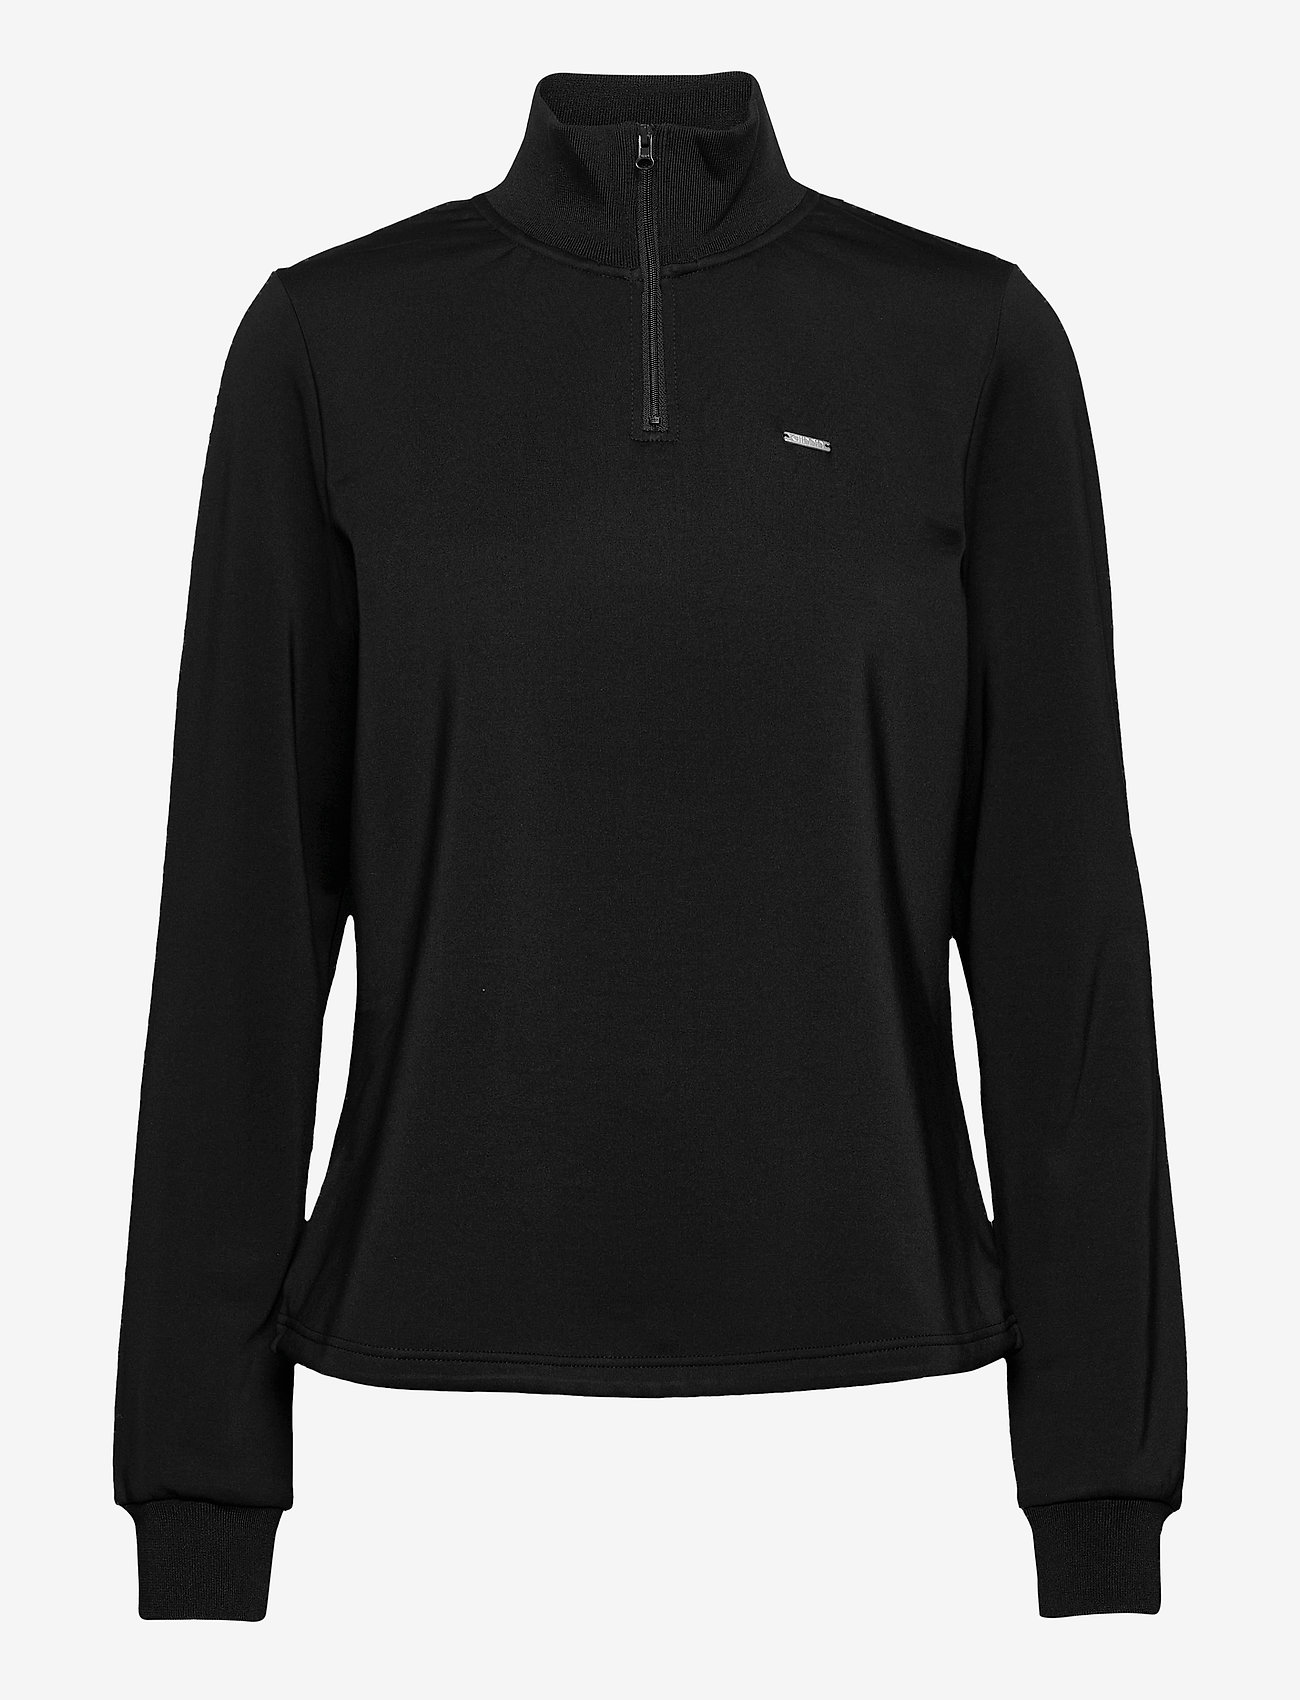 AIM'N - Boost Sweatshirt - svetarit - black - 0